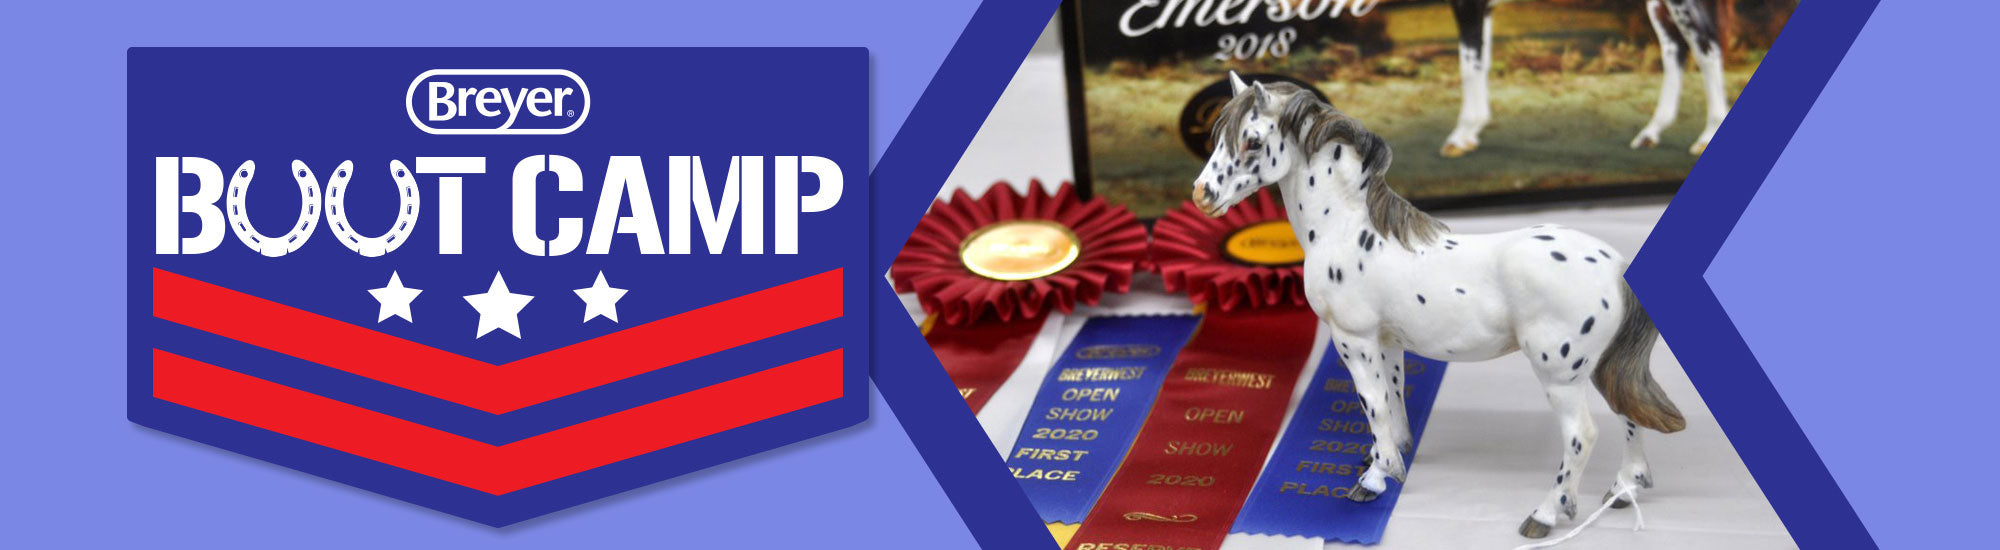 Breyer Boot Camp Header